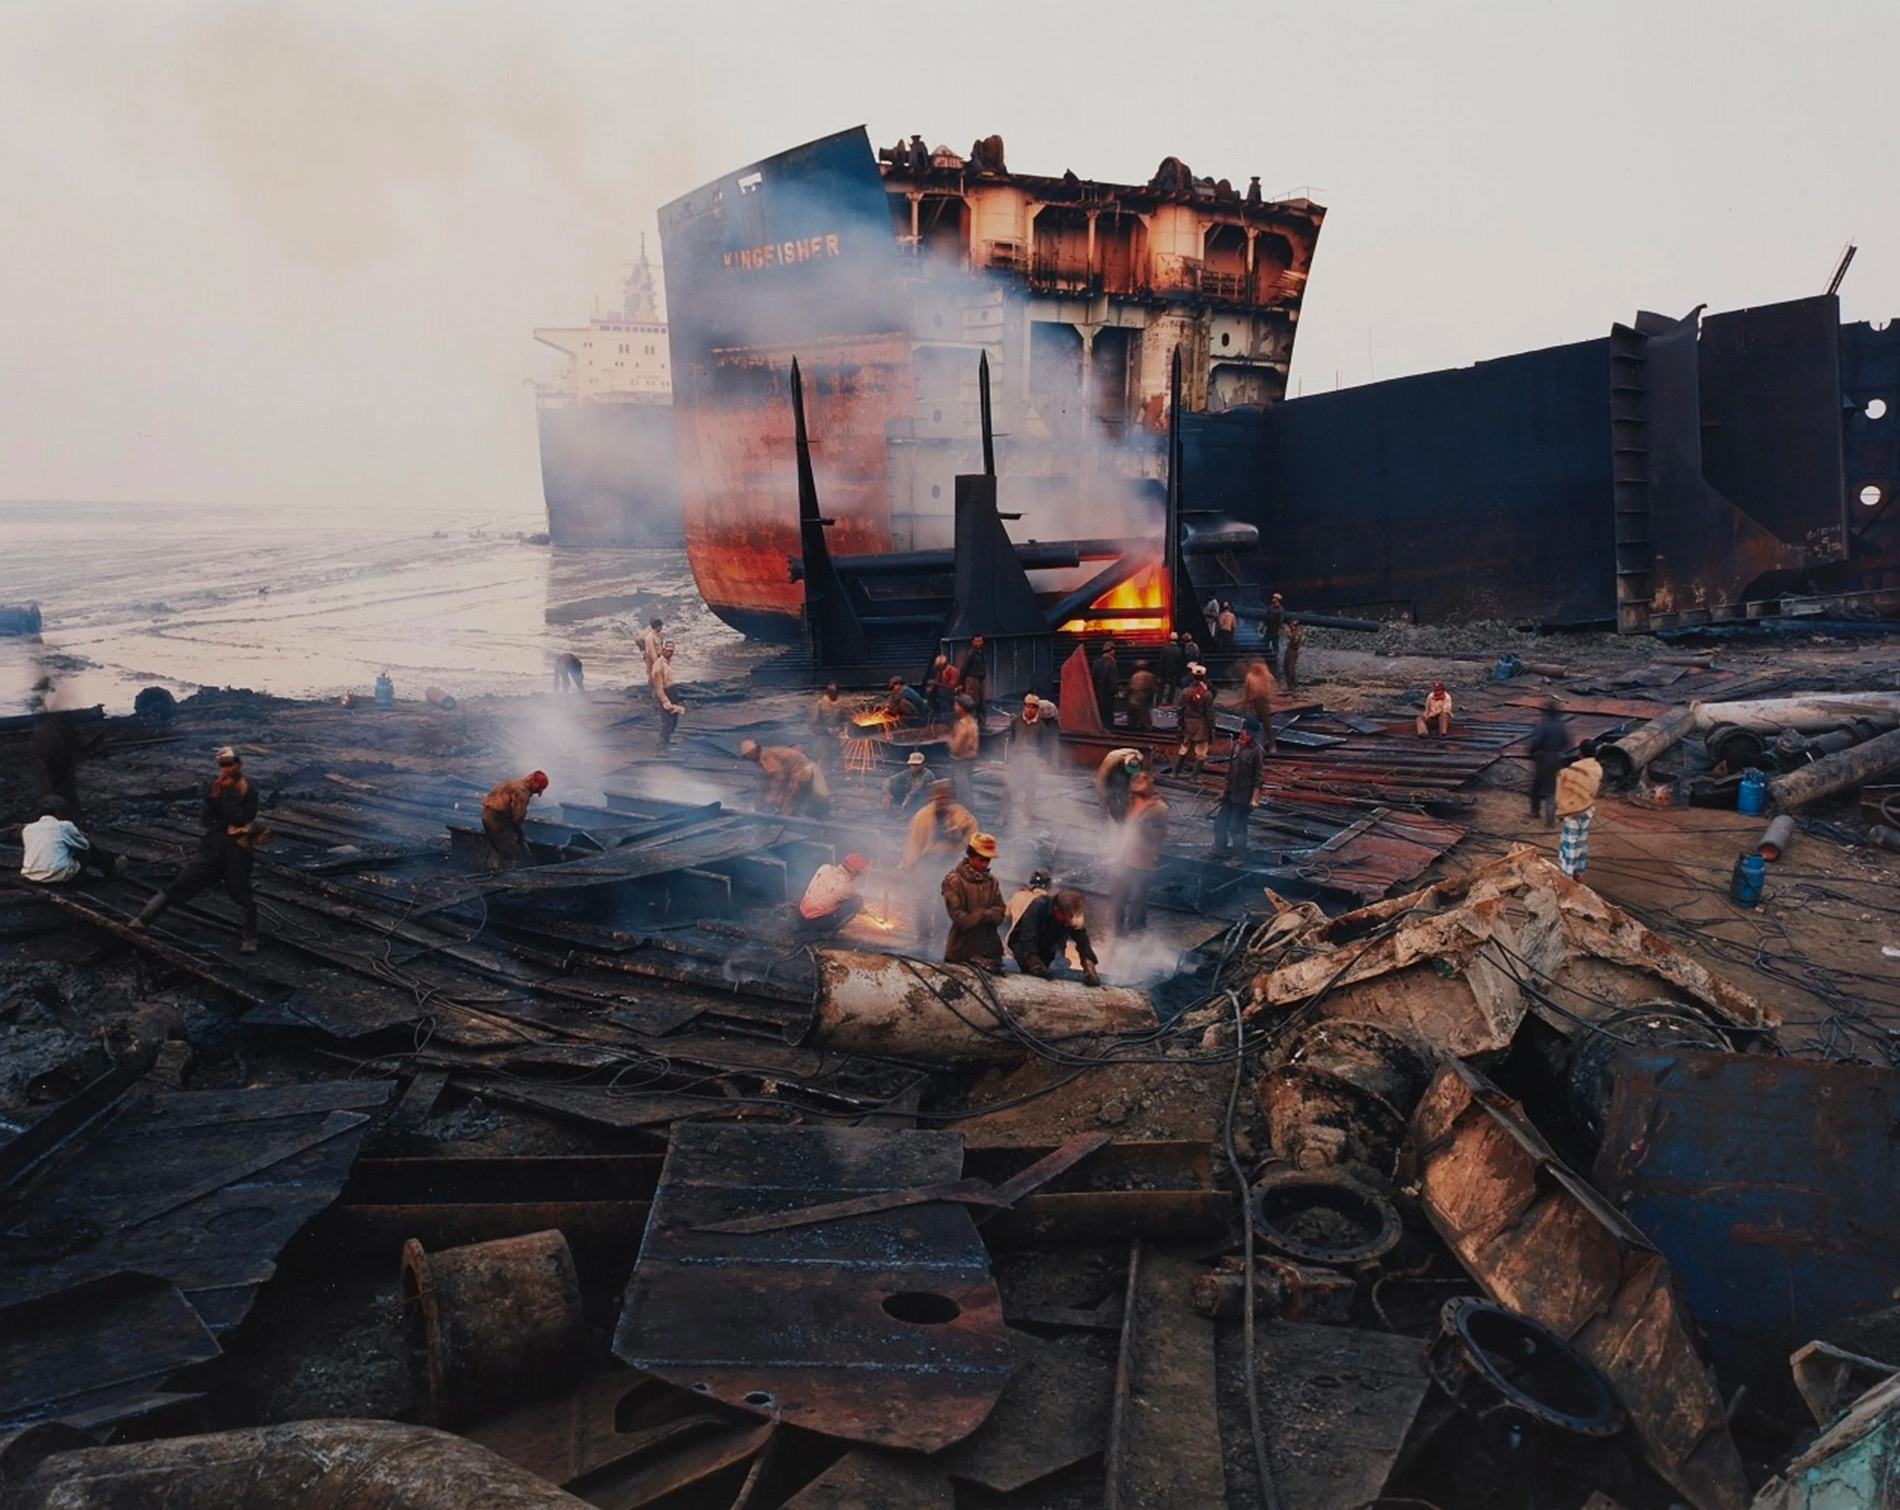 Edward Burtynski Photographie Shipbreaking No11 Chittagong Bangladesh 2000